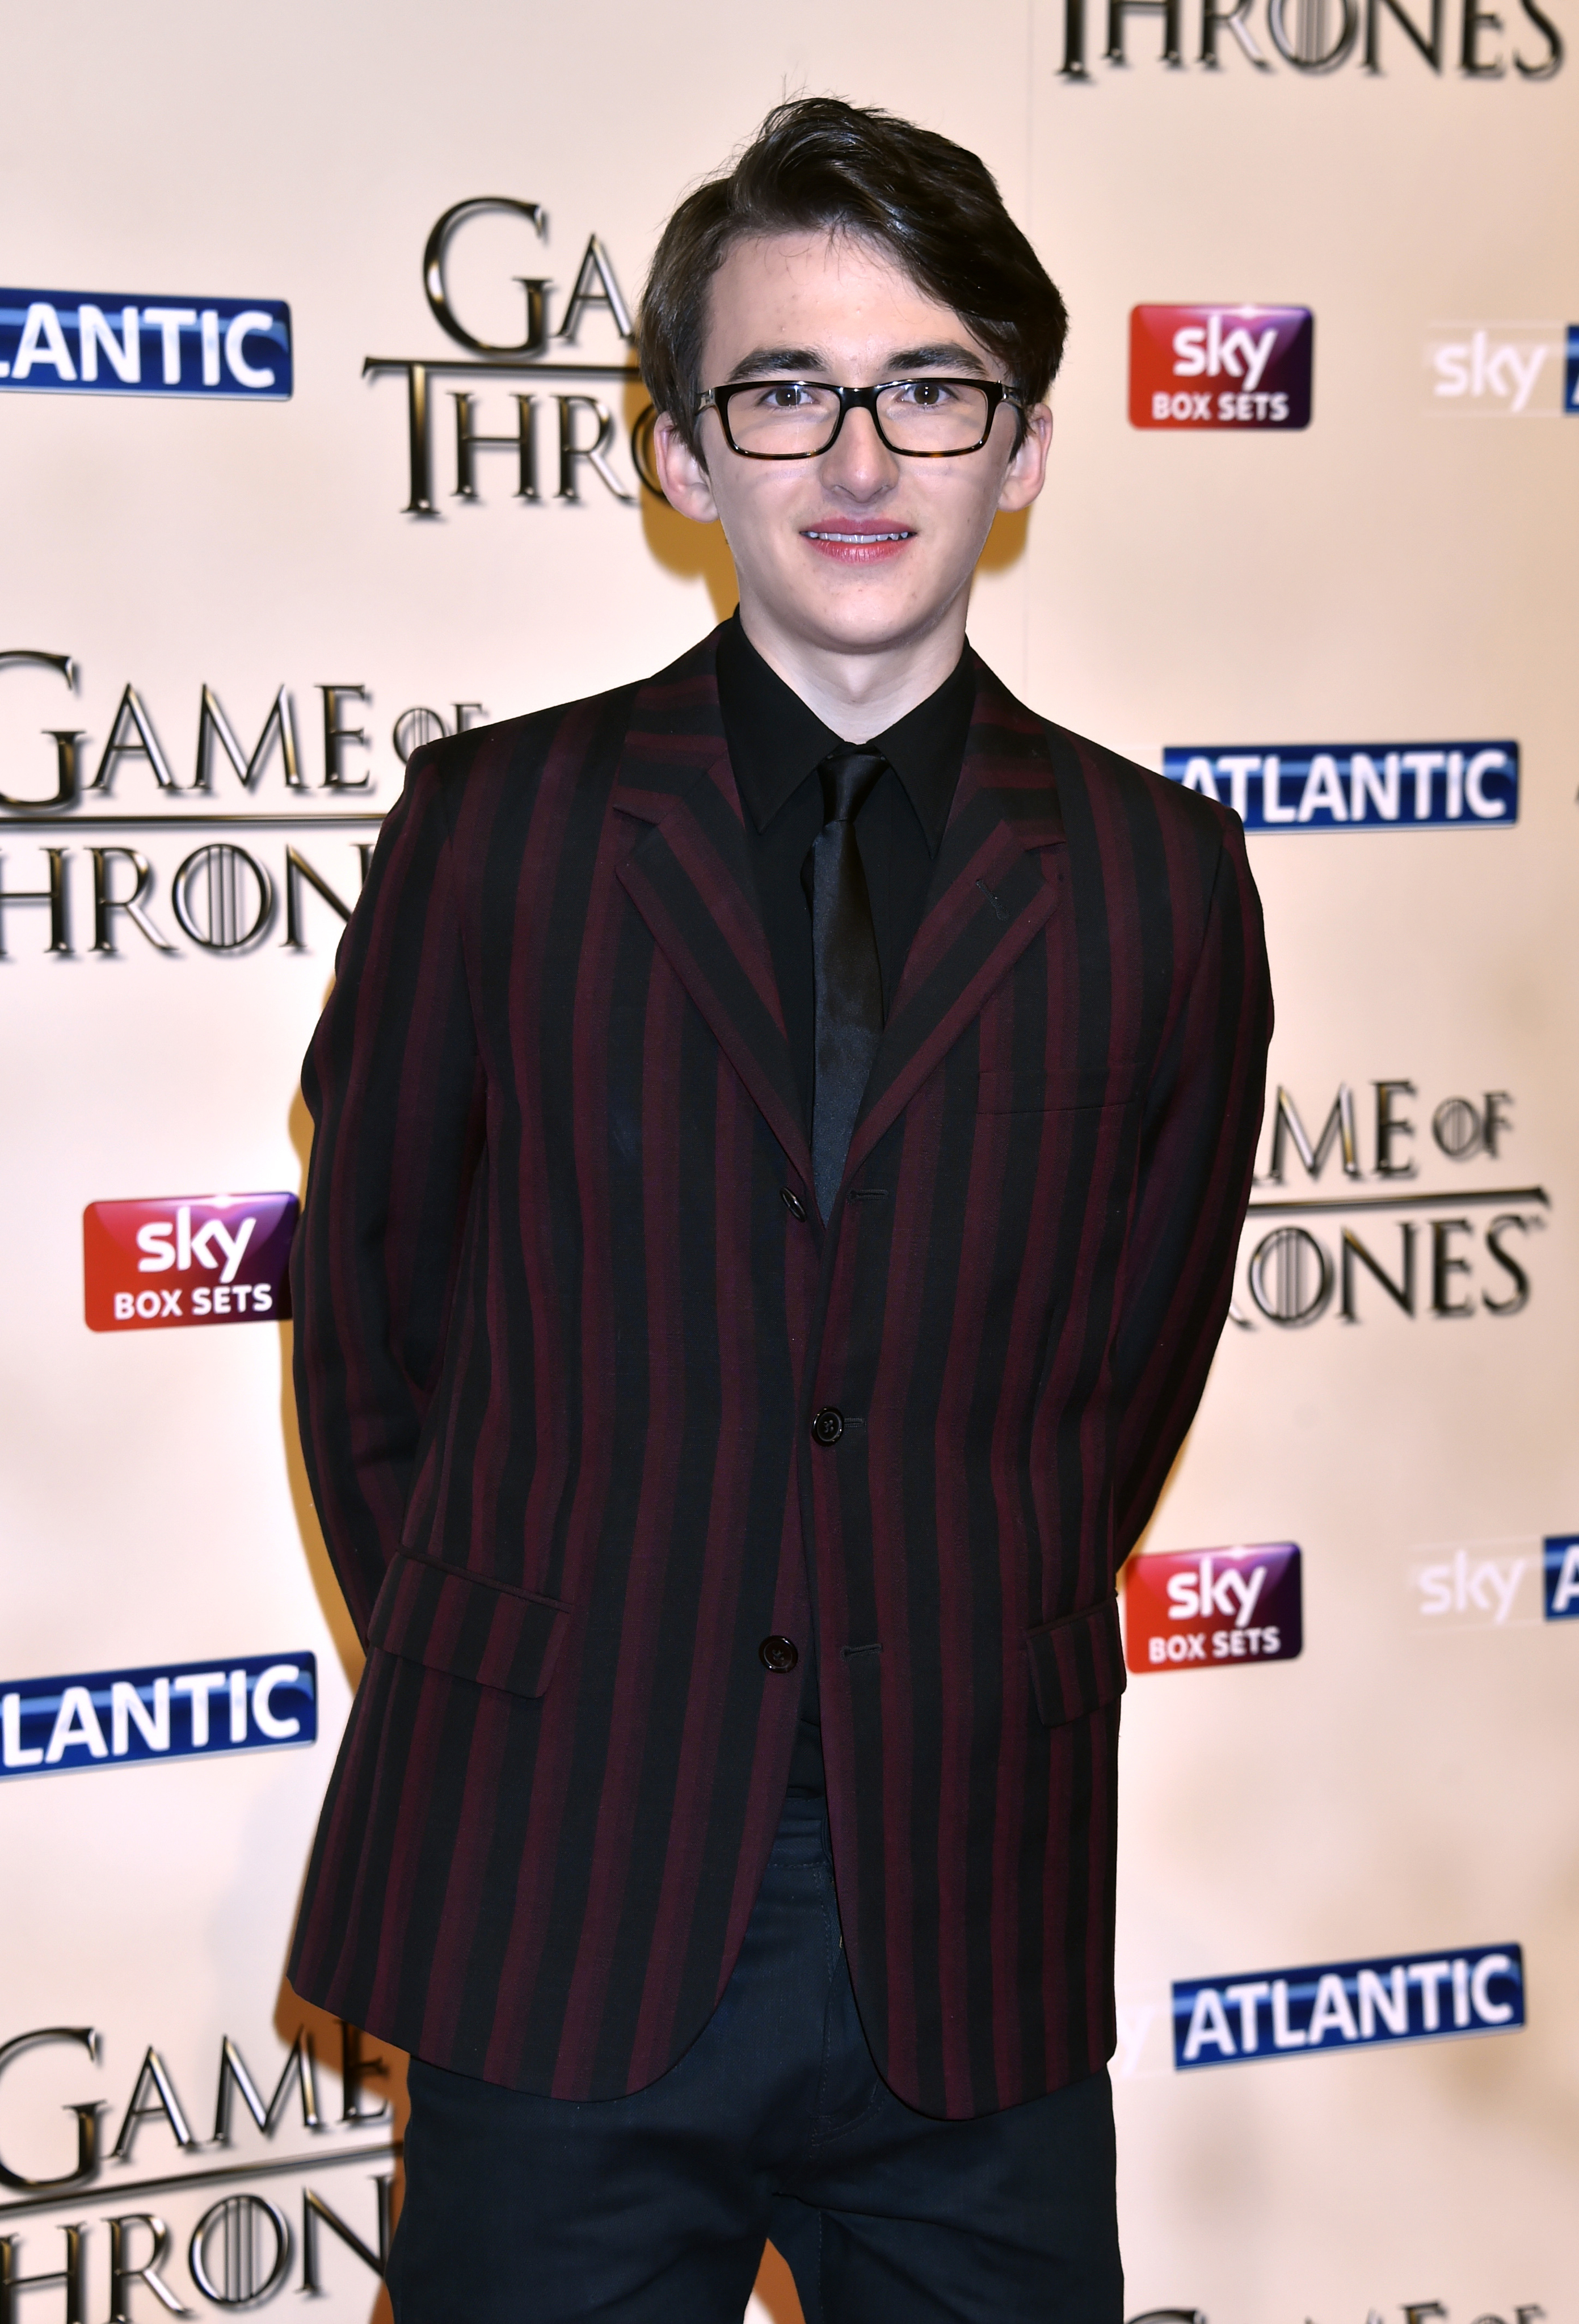 Game Of Thrones Isaac Hempstead-Wright